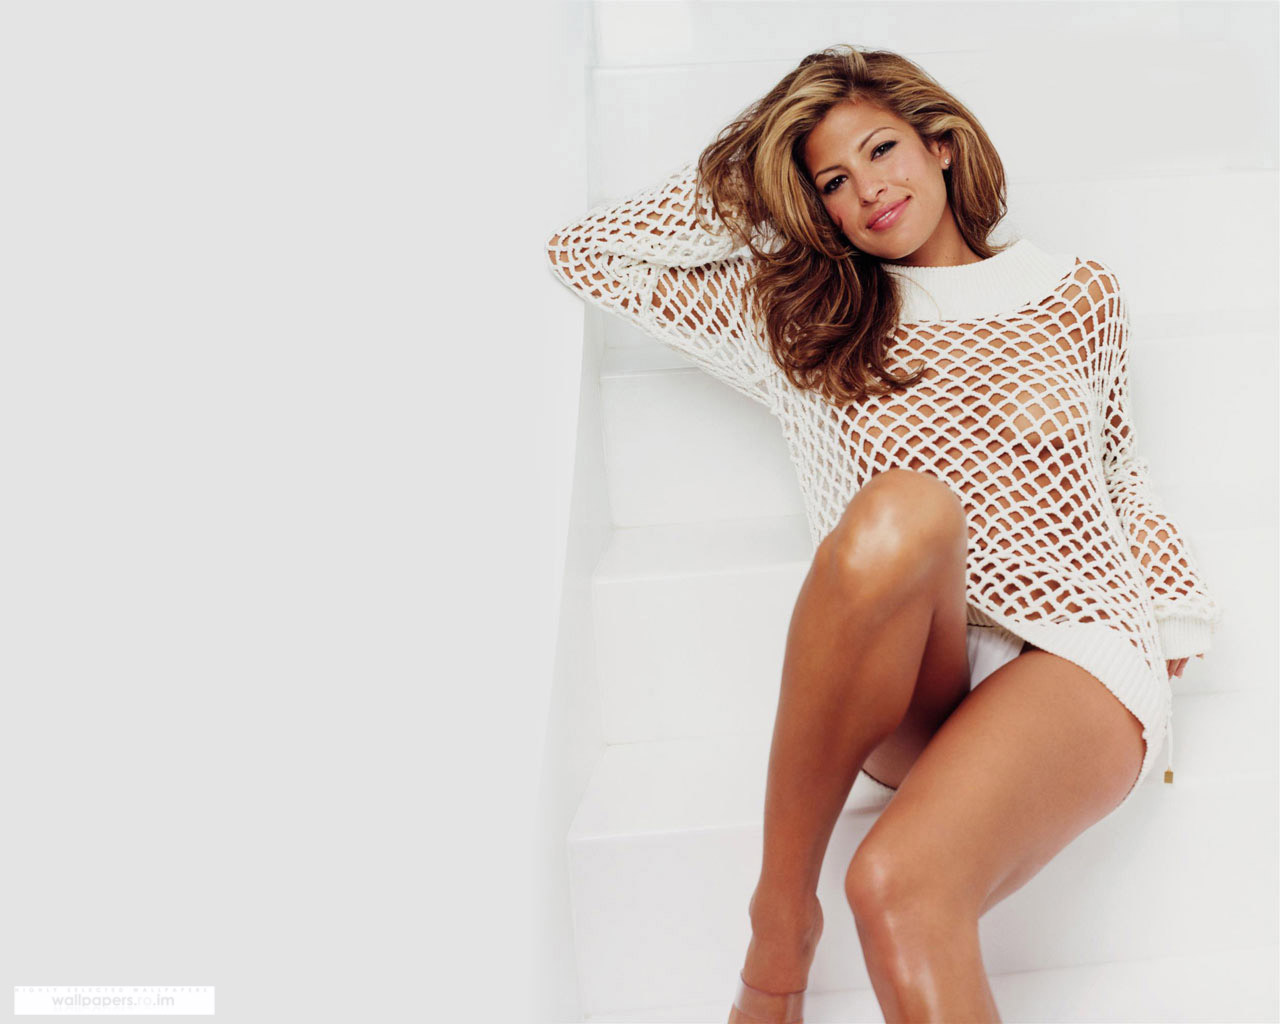 all collection wallpapers eva mendes hot wallpaper 2013. Black Bedroom Furniture Sets. Home Design Ideas